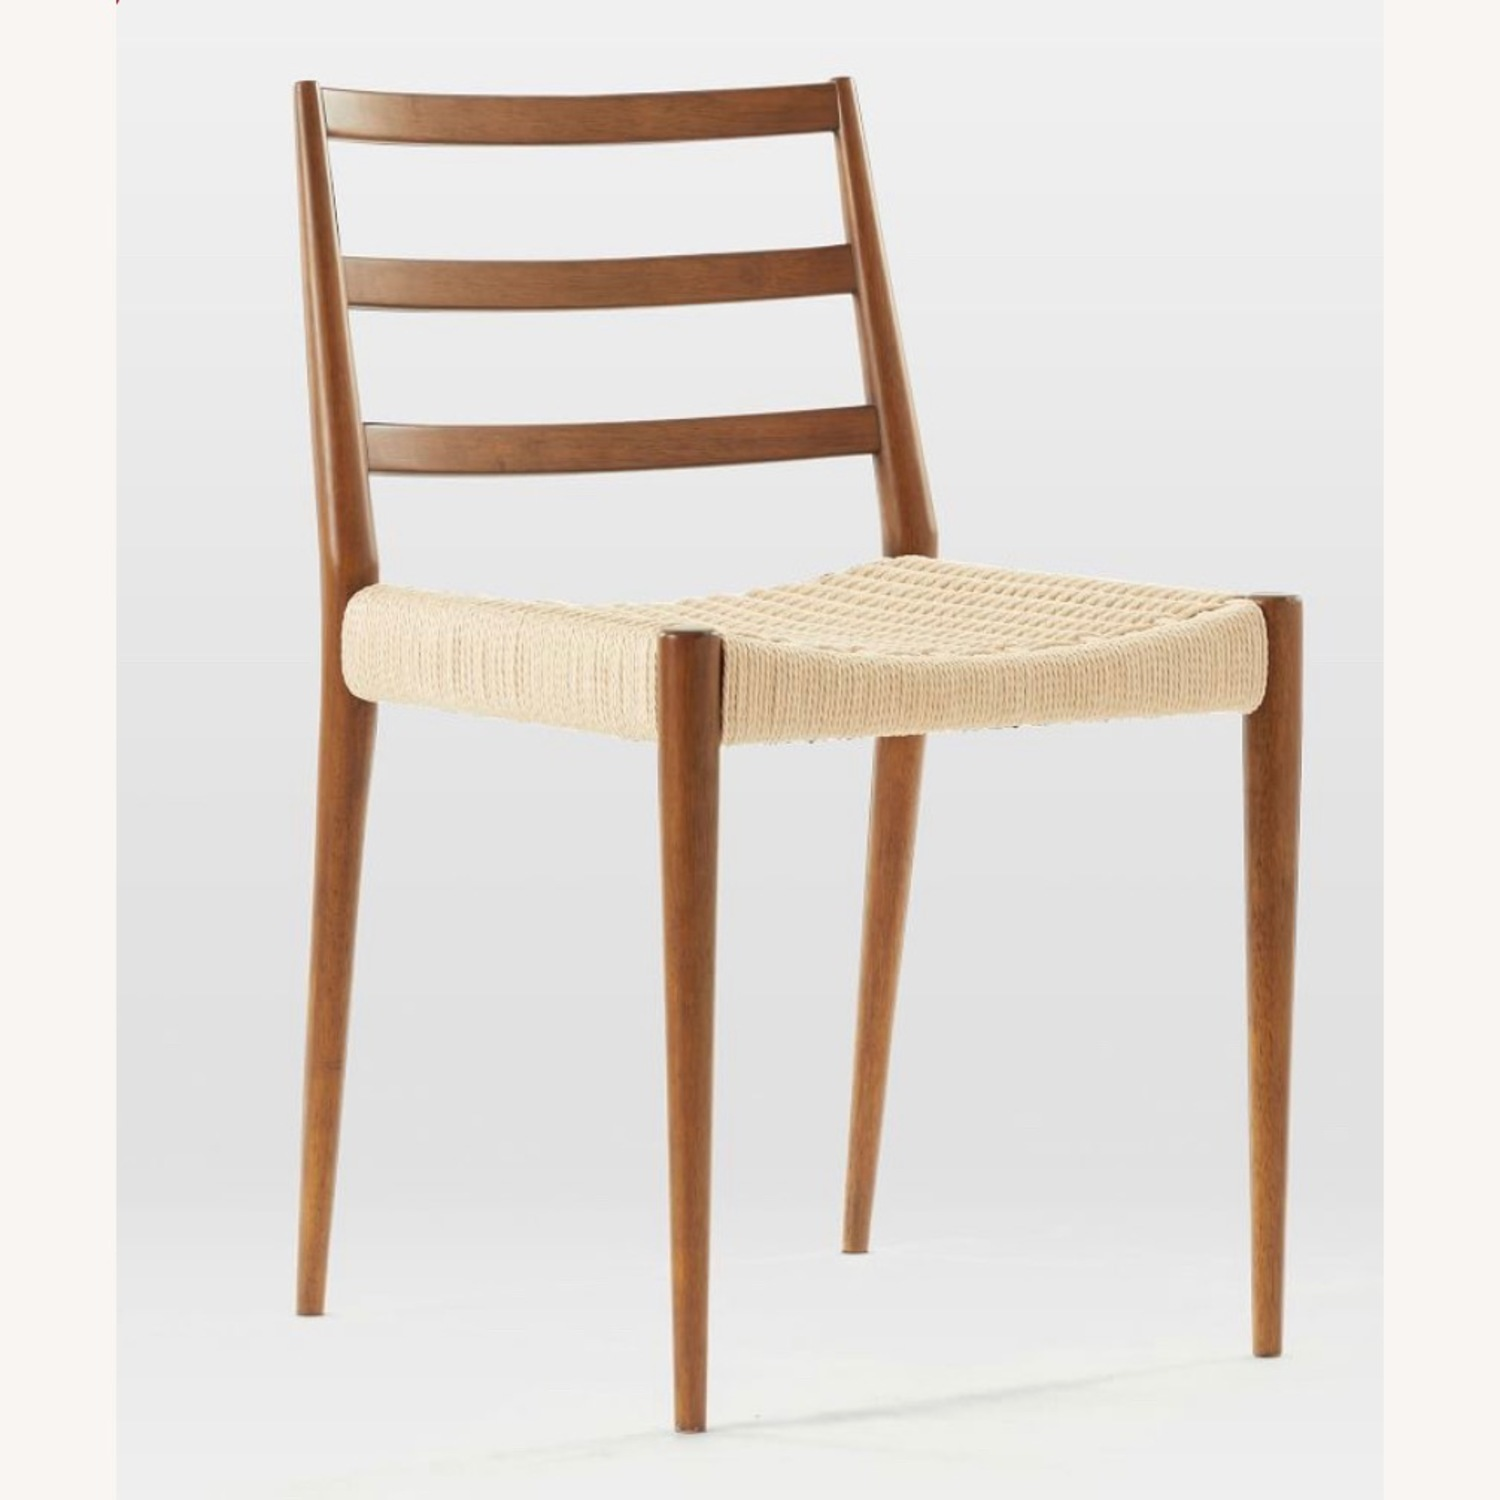 West Elm Holland Dining Chair Walnut/Natural - image-1